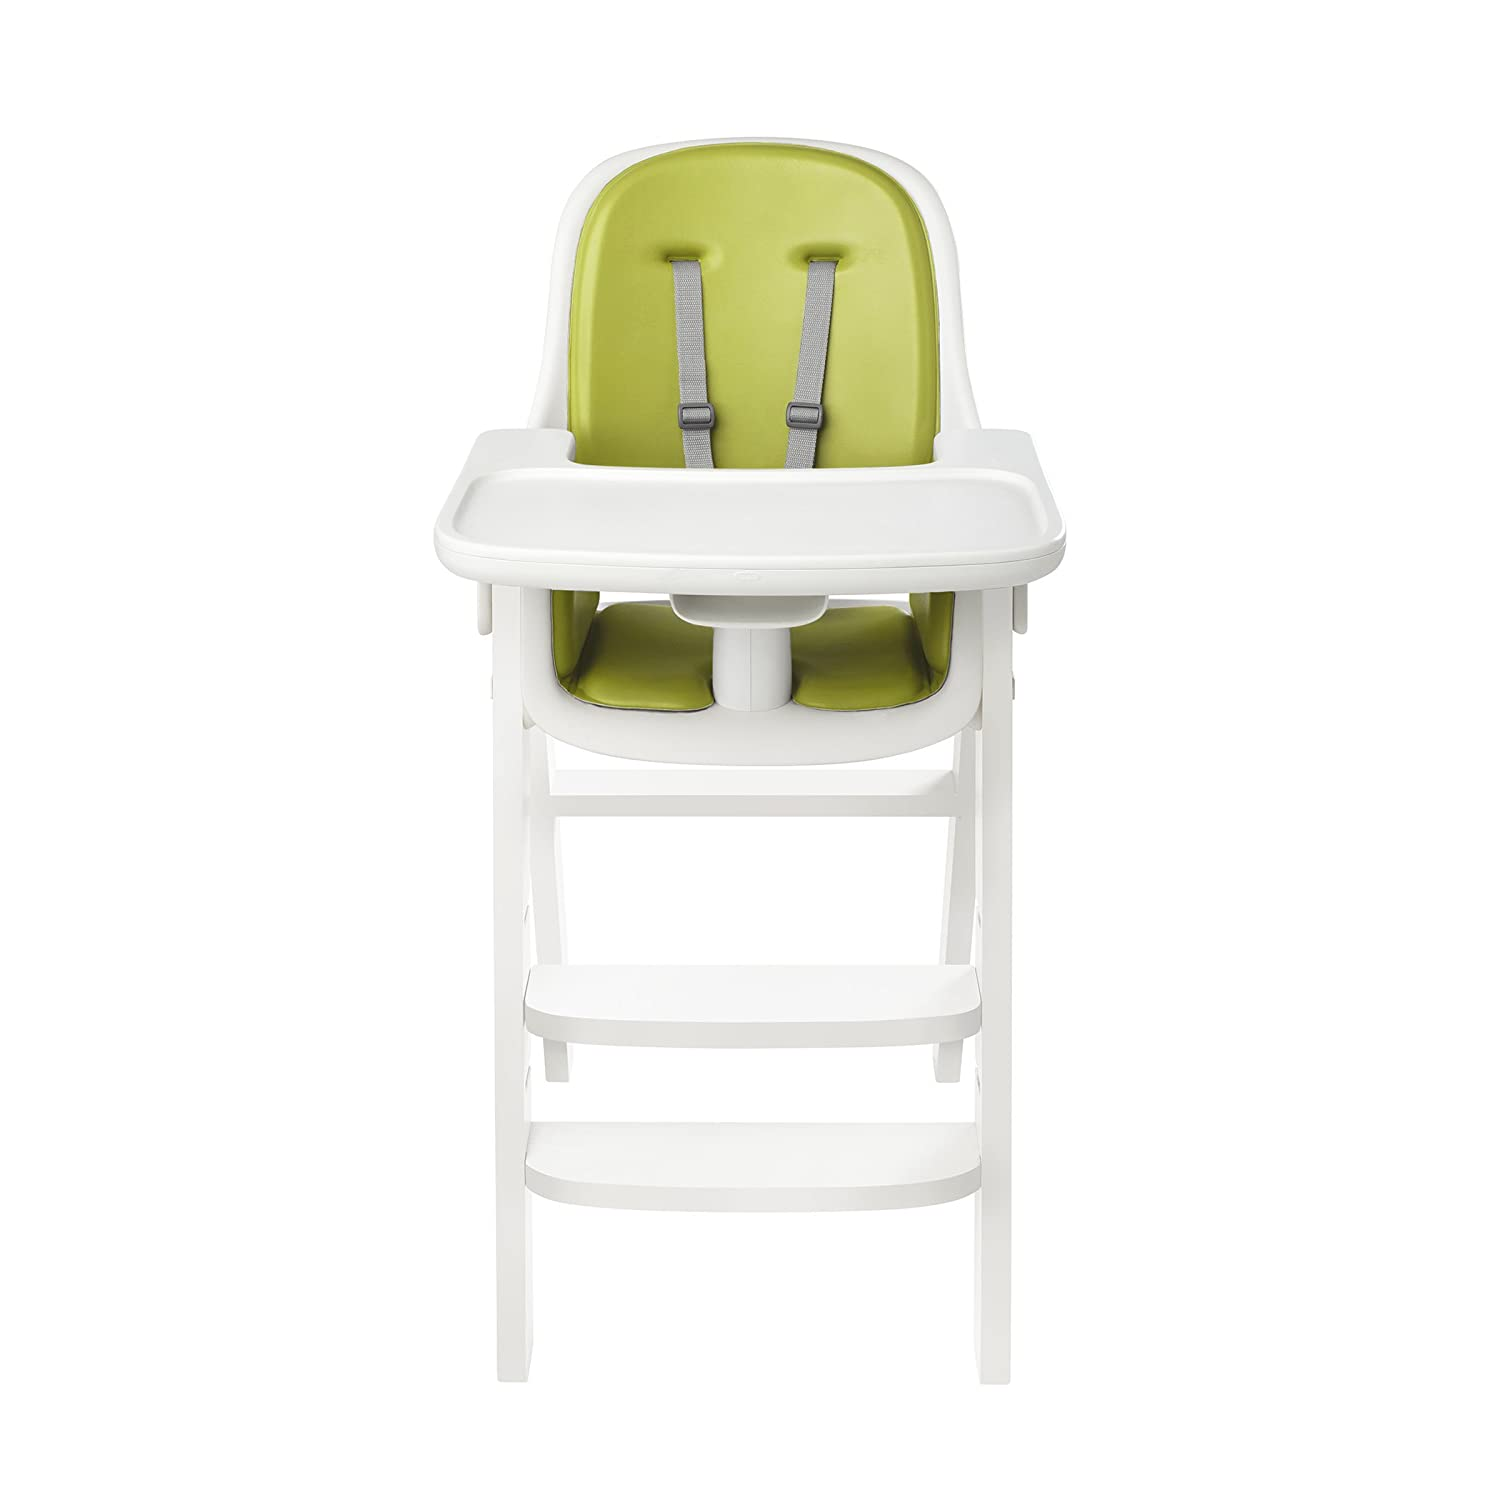 Astonishing Oxo Tot Sprout High Chair Green White Ncnpc Chair Design For Home Ncnpcorg